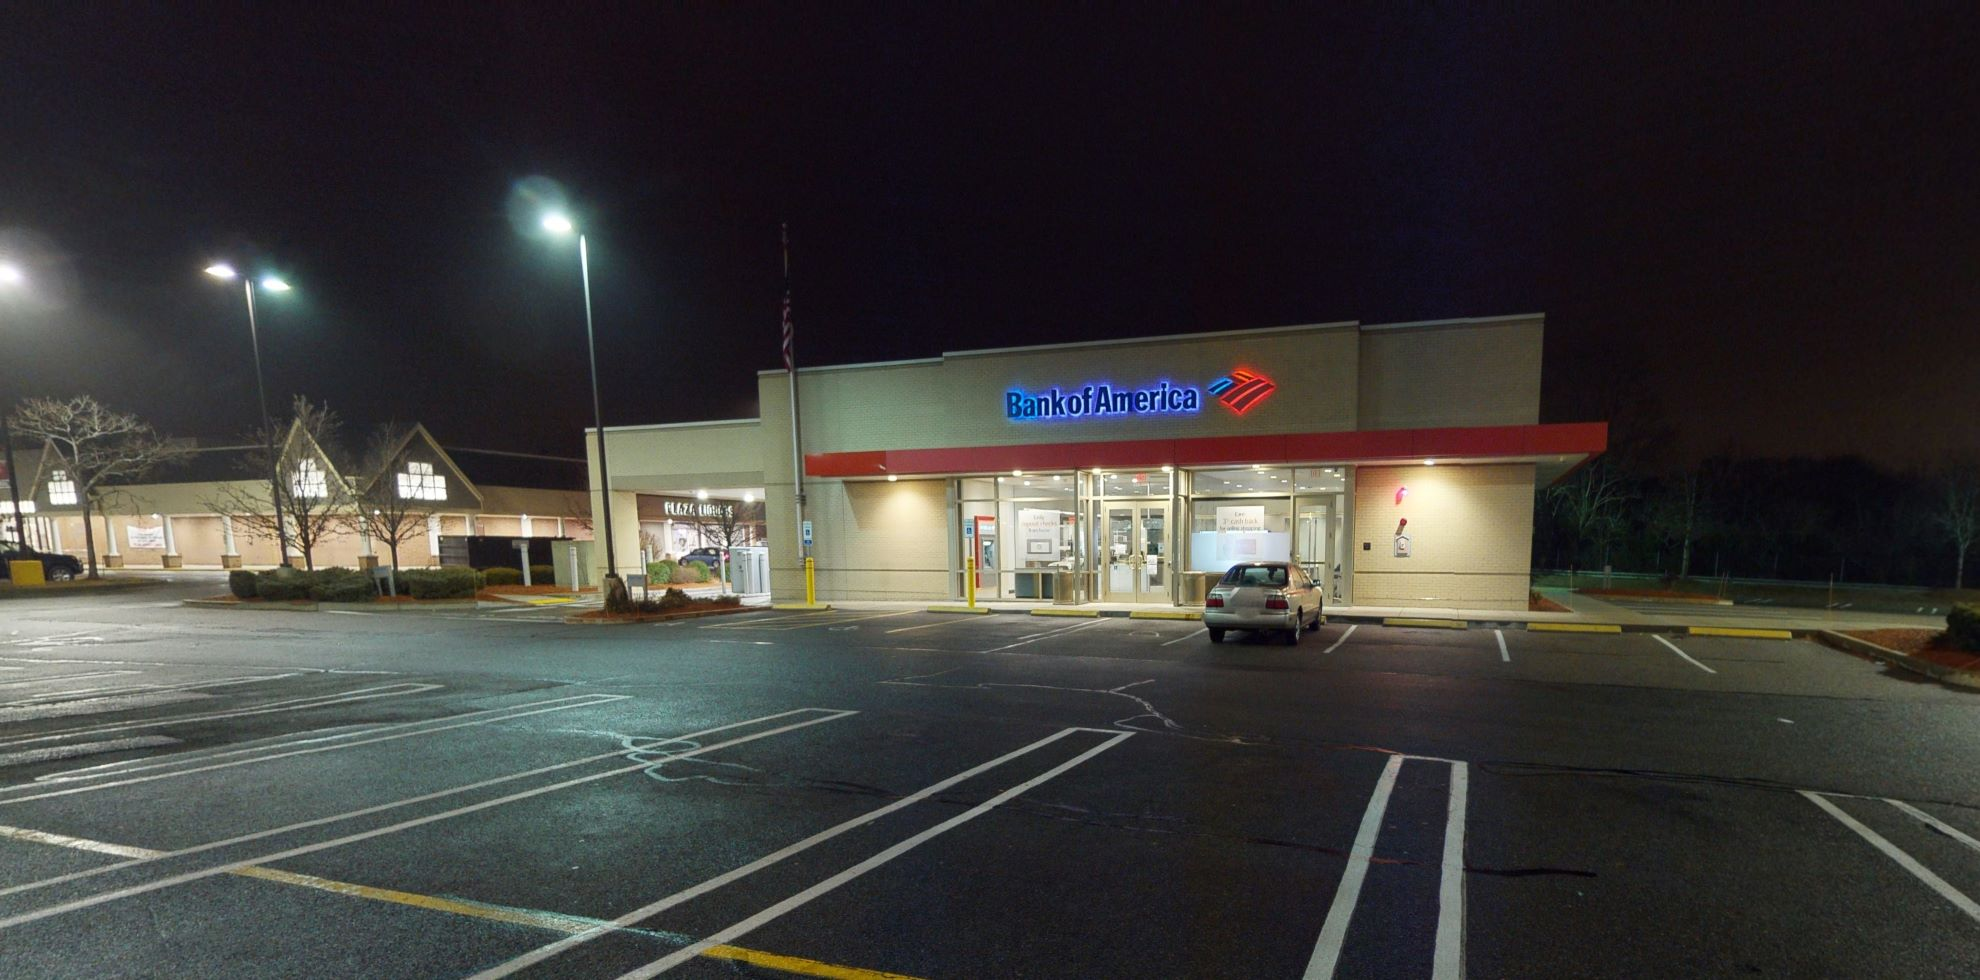 Bank of America financial center with drive-thru ATM and teller | 113 Samoset St, Plymouth, MA 02360